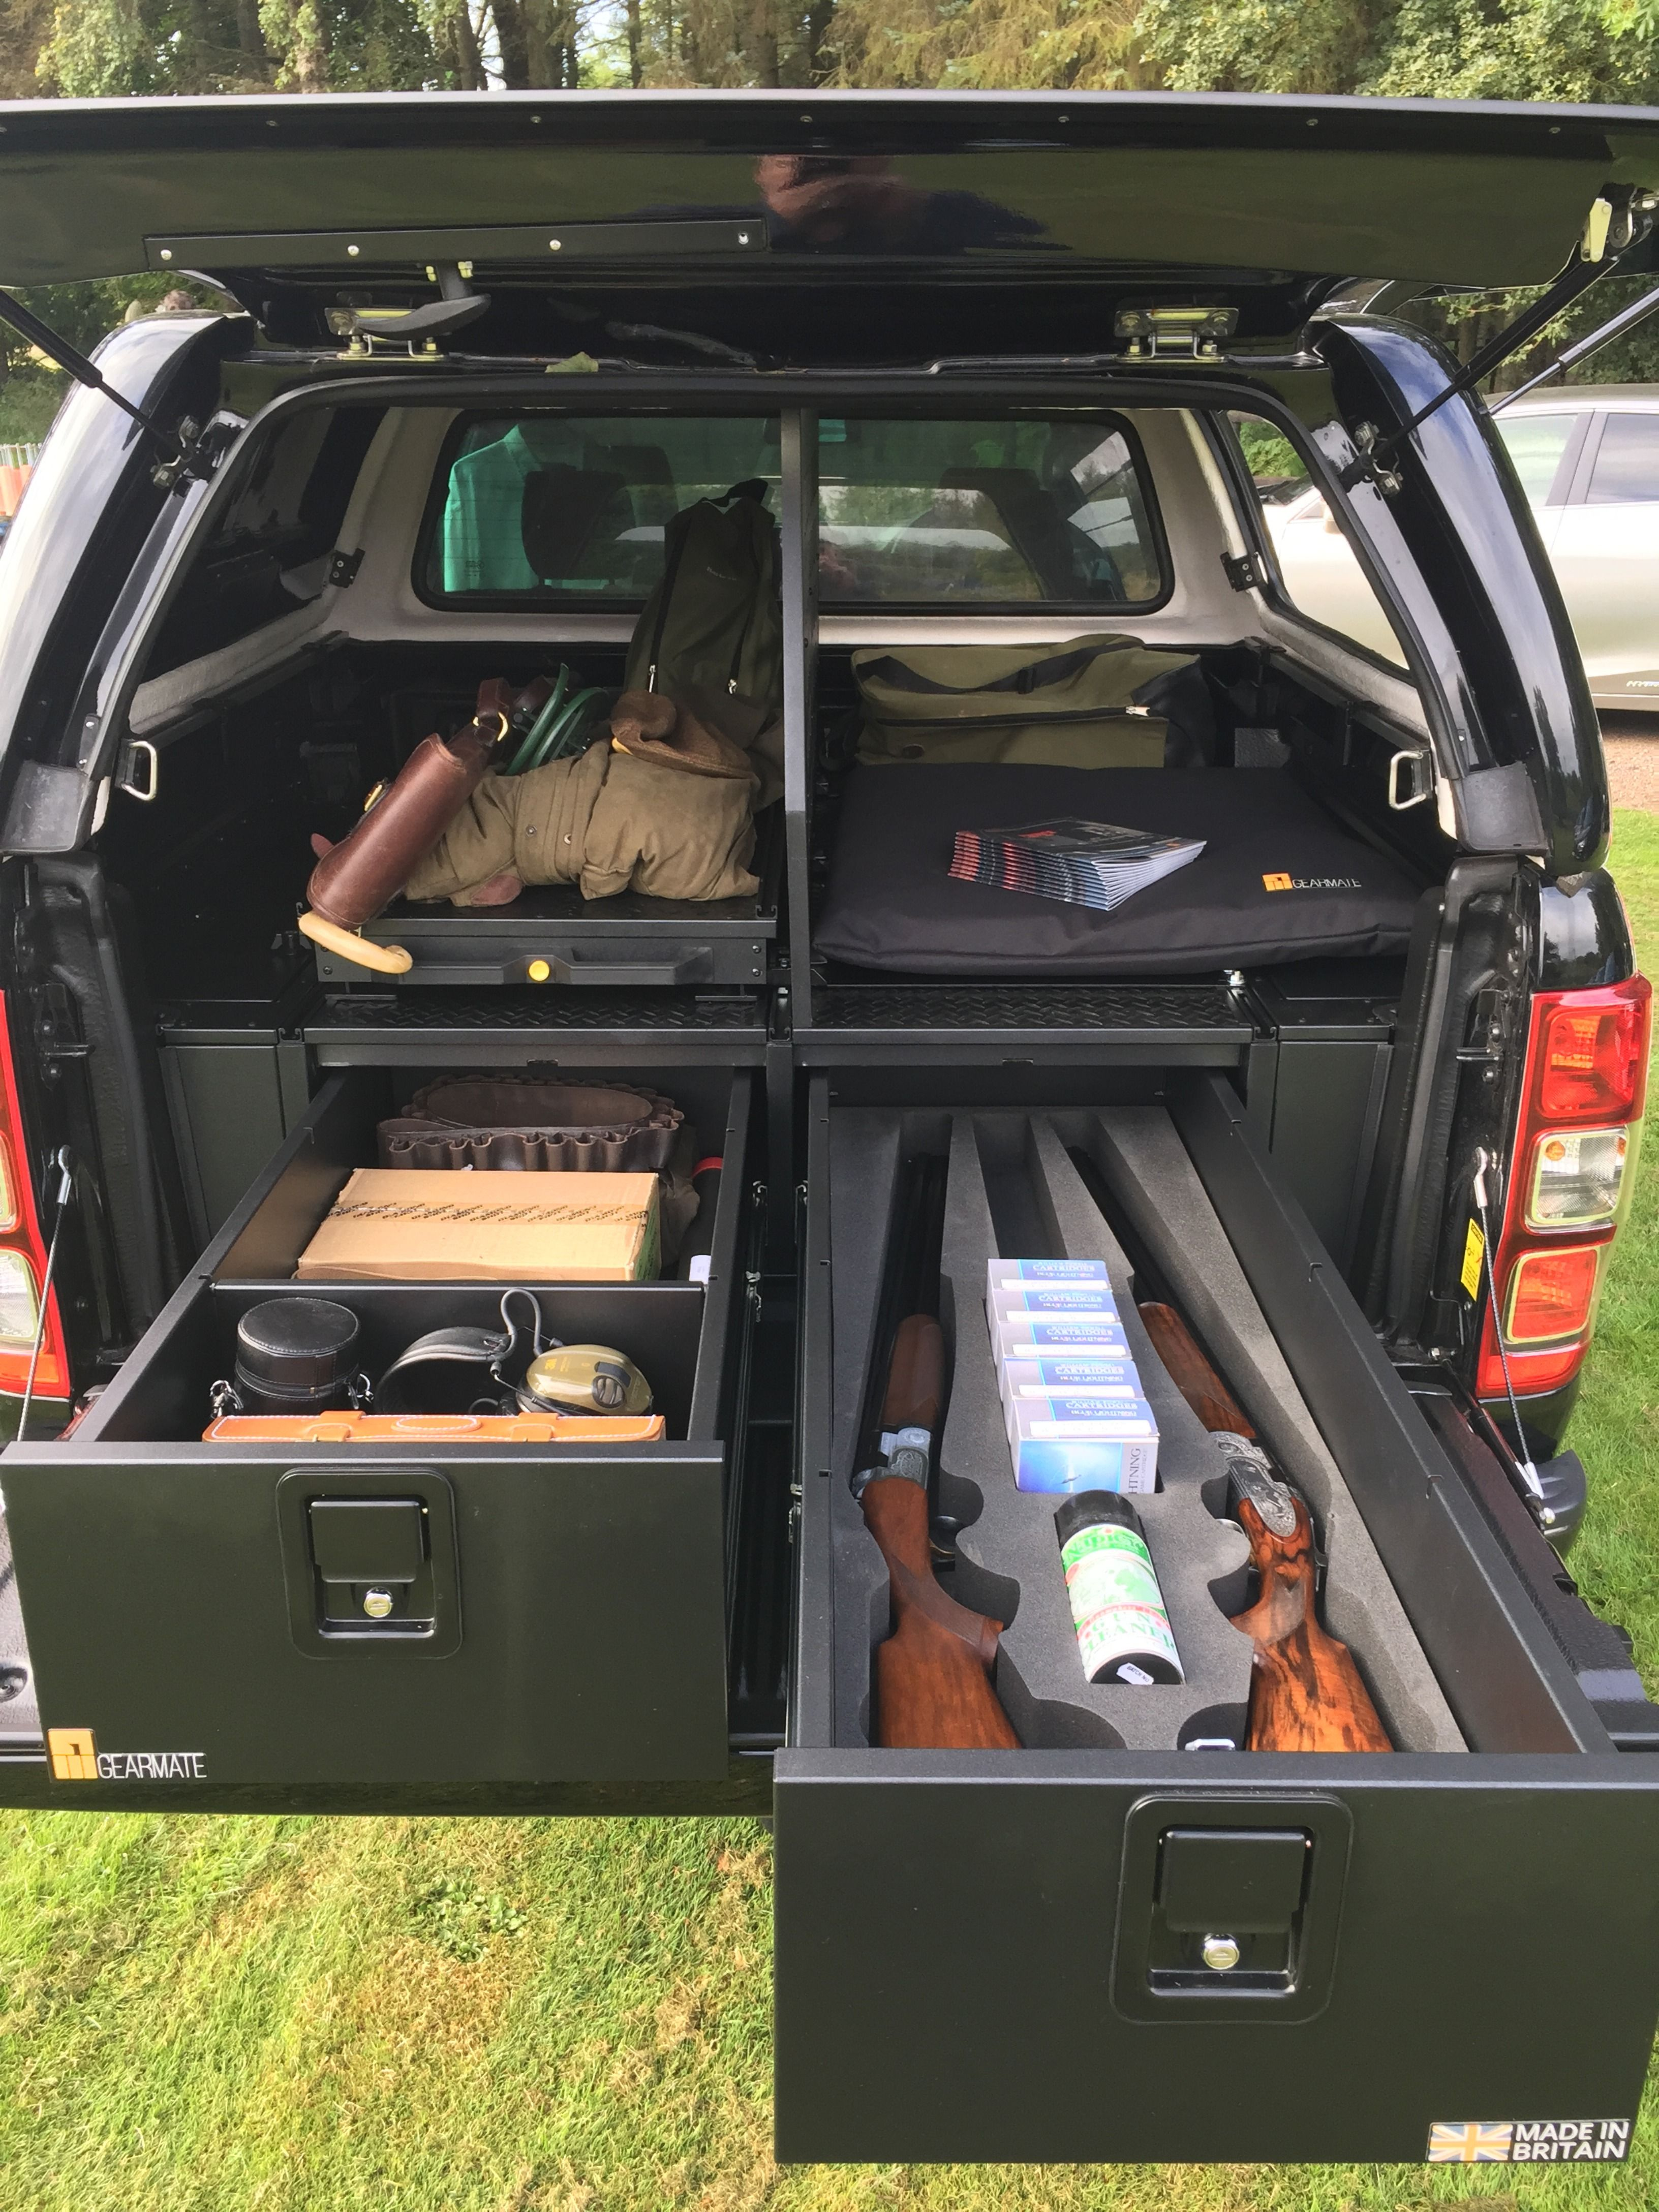 Ford Truck Bed Divider : truck, divider, Ranger, #gearmate, 226MM, Drawer,, Infill, Pods,, Tailgate, Flap,, Central, Divider, Narrow, Sli…, Pickup, Truck, Accessories,, Storage,